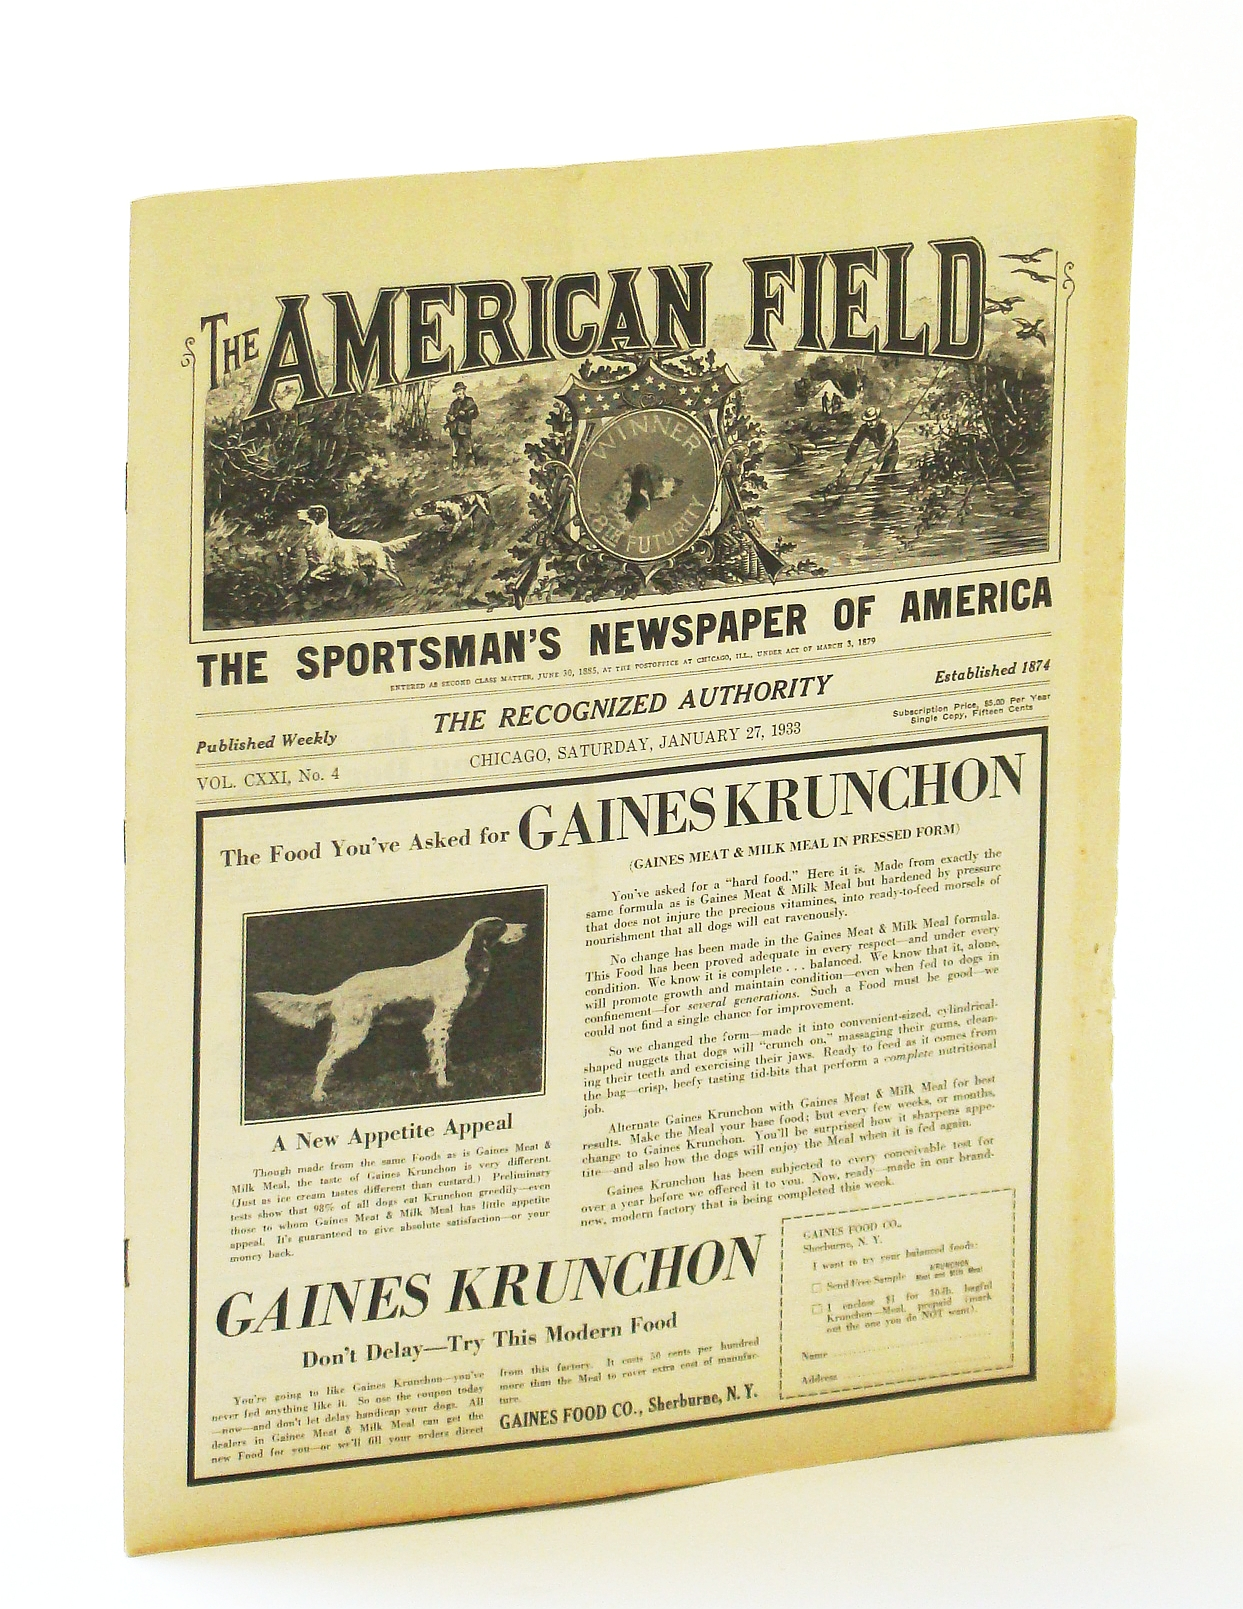 Image for The American Field - The Sportsman's Newspaper of America, Vol. CXXI, No. 4, Saturday, January [Jan.] 27, 1933